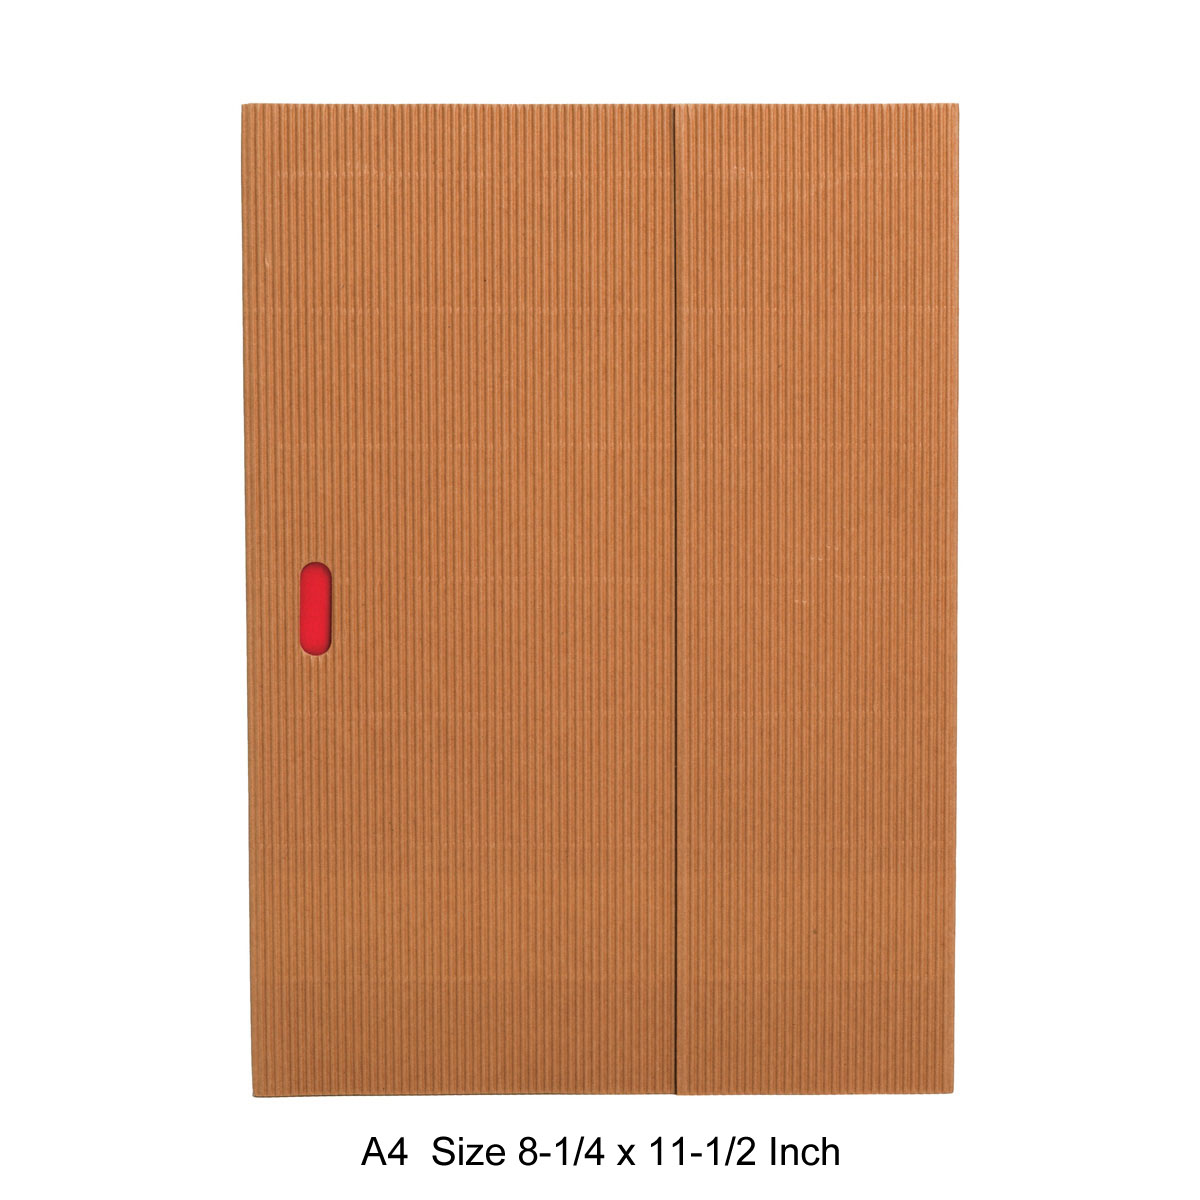 Paper-Oh Ondulo Notebook A4 Size Natural Lined